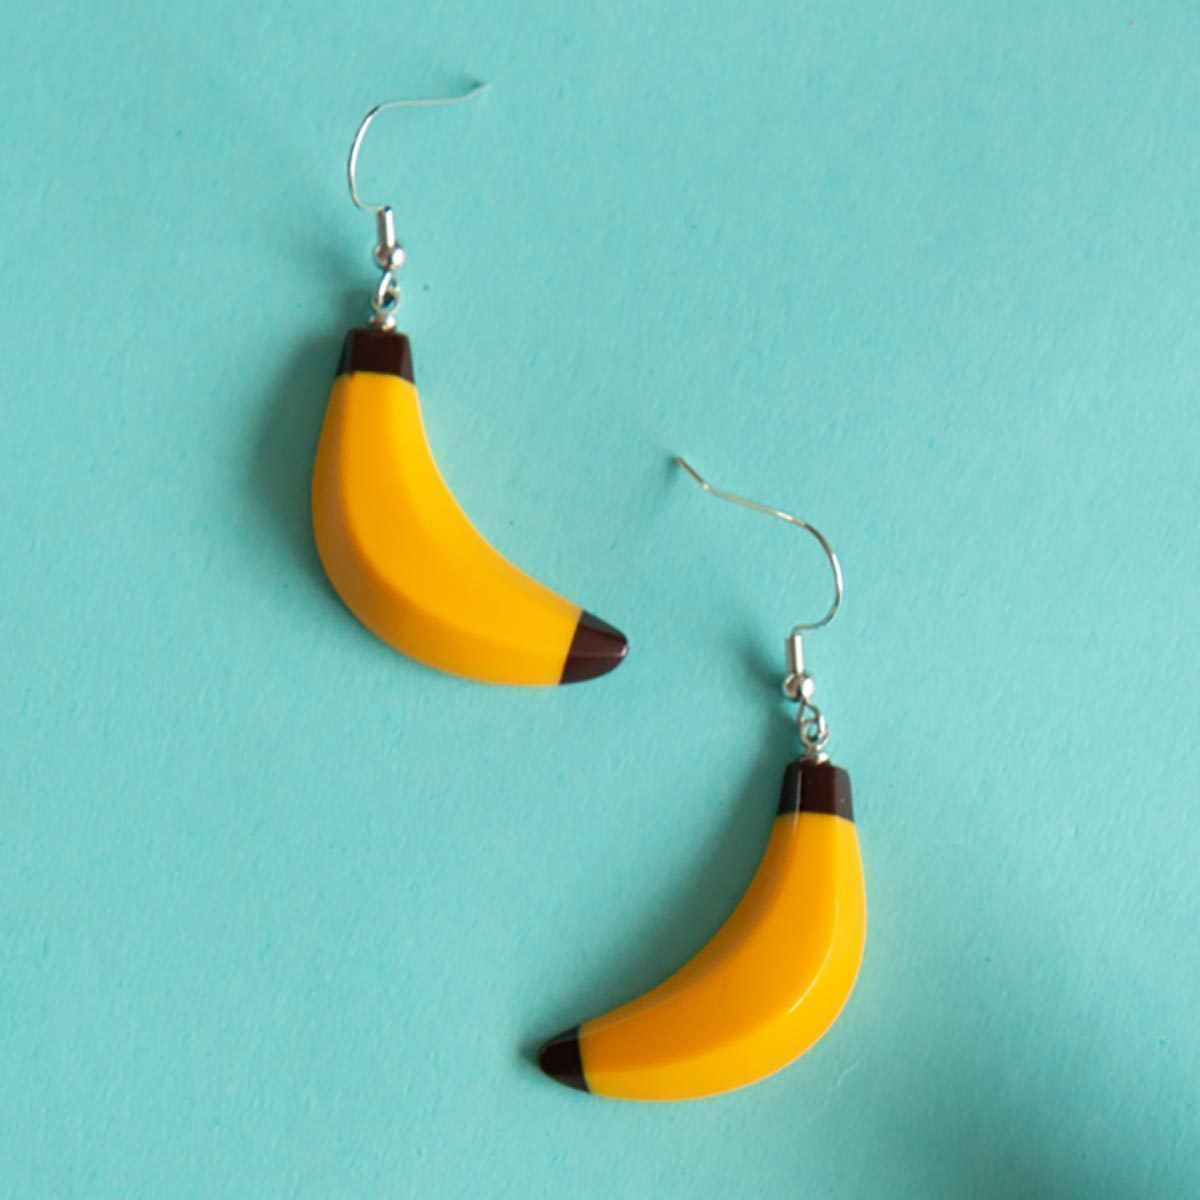 RO1960ER-G-BANANA-Tutti-Frutti-Banana-Earrings-1200x1200.jpg